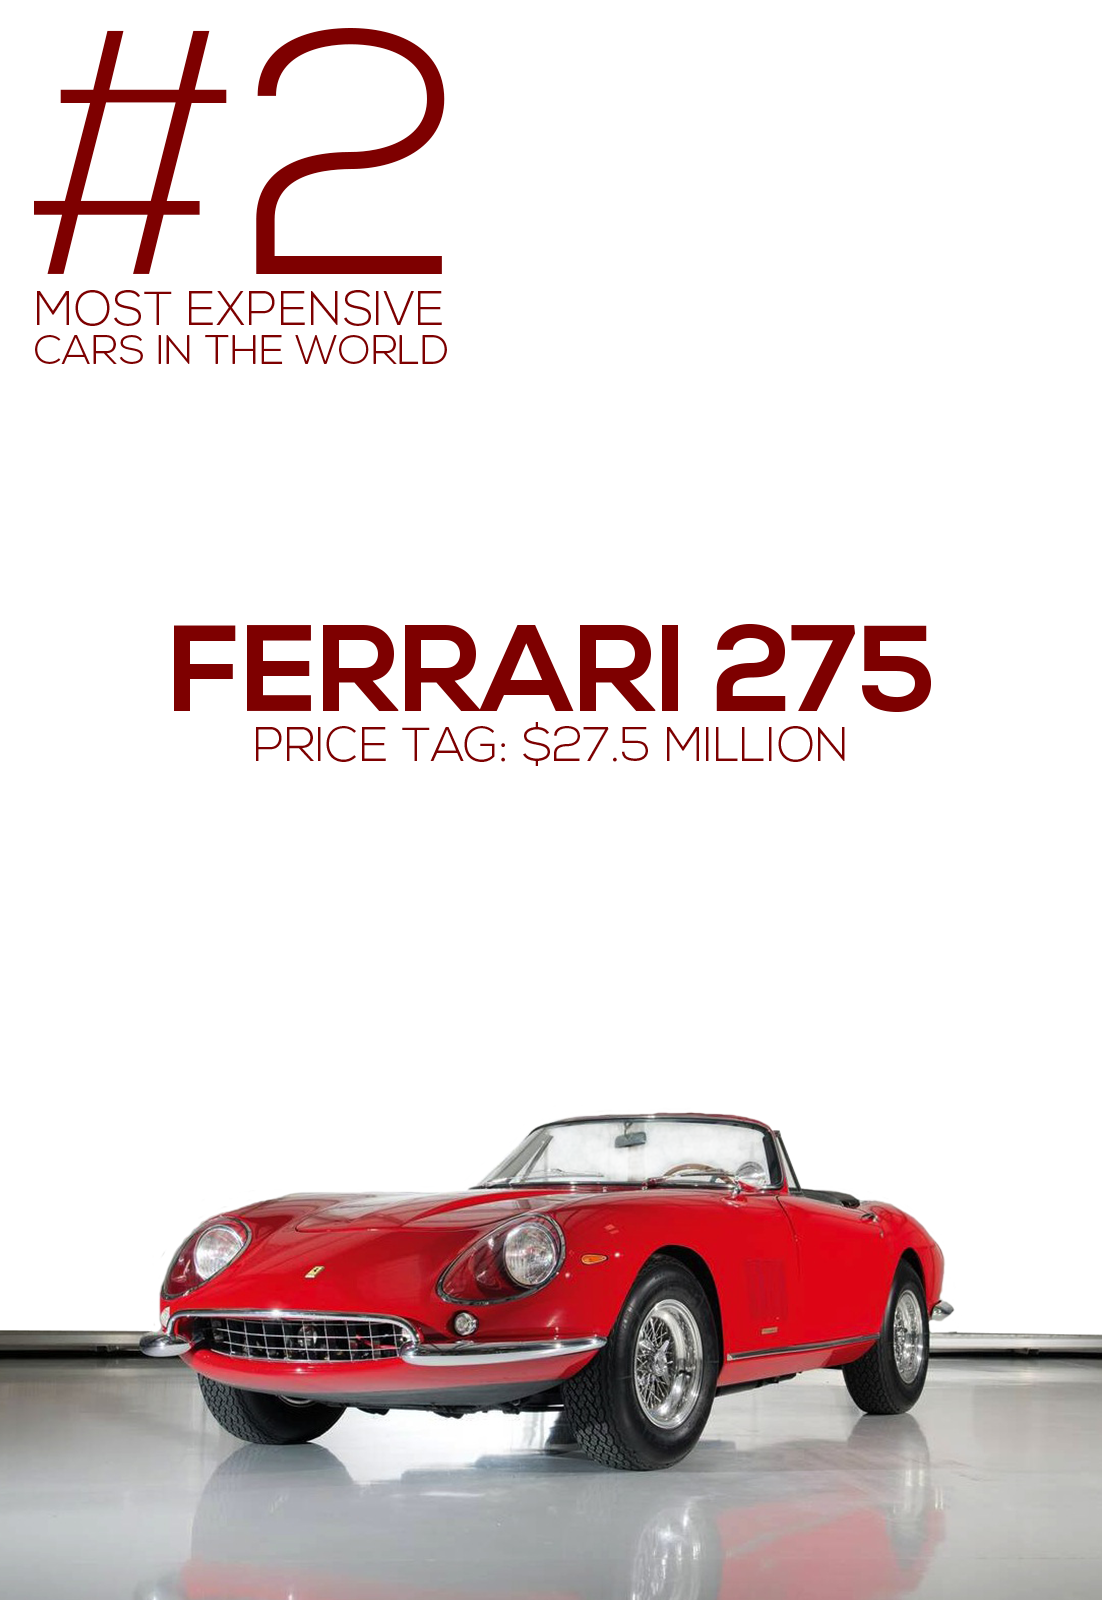 Most Expensive Cars In The World 2014 Expensive Cars Most Expensive Car Car In The World